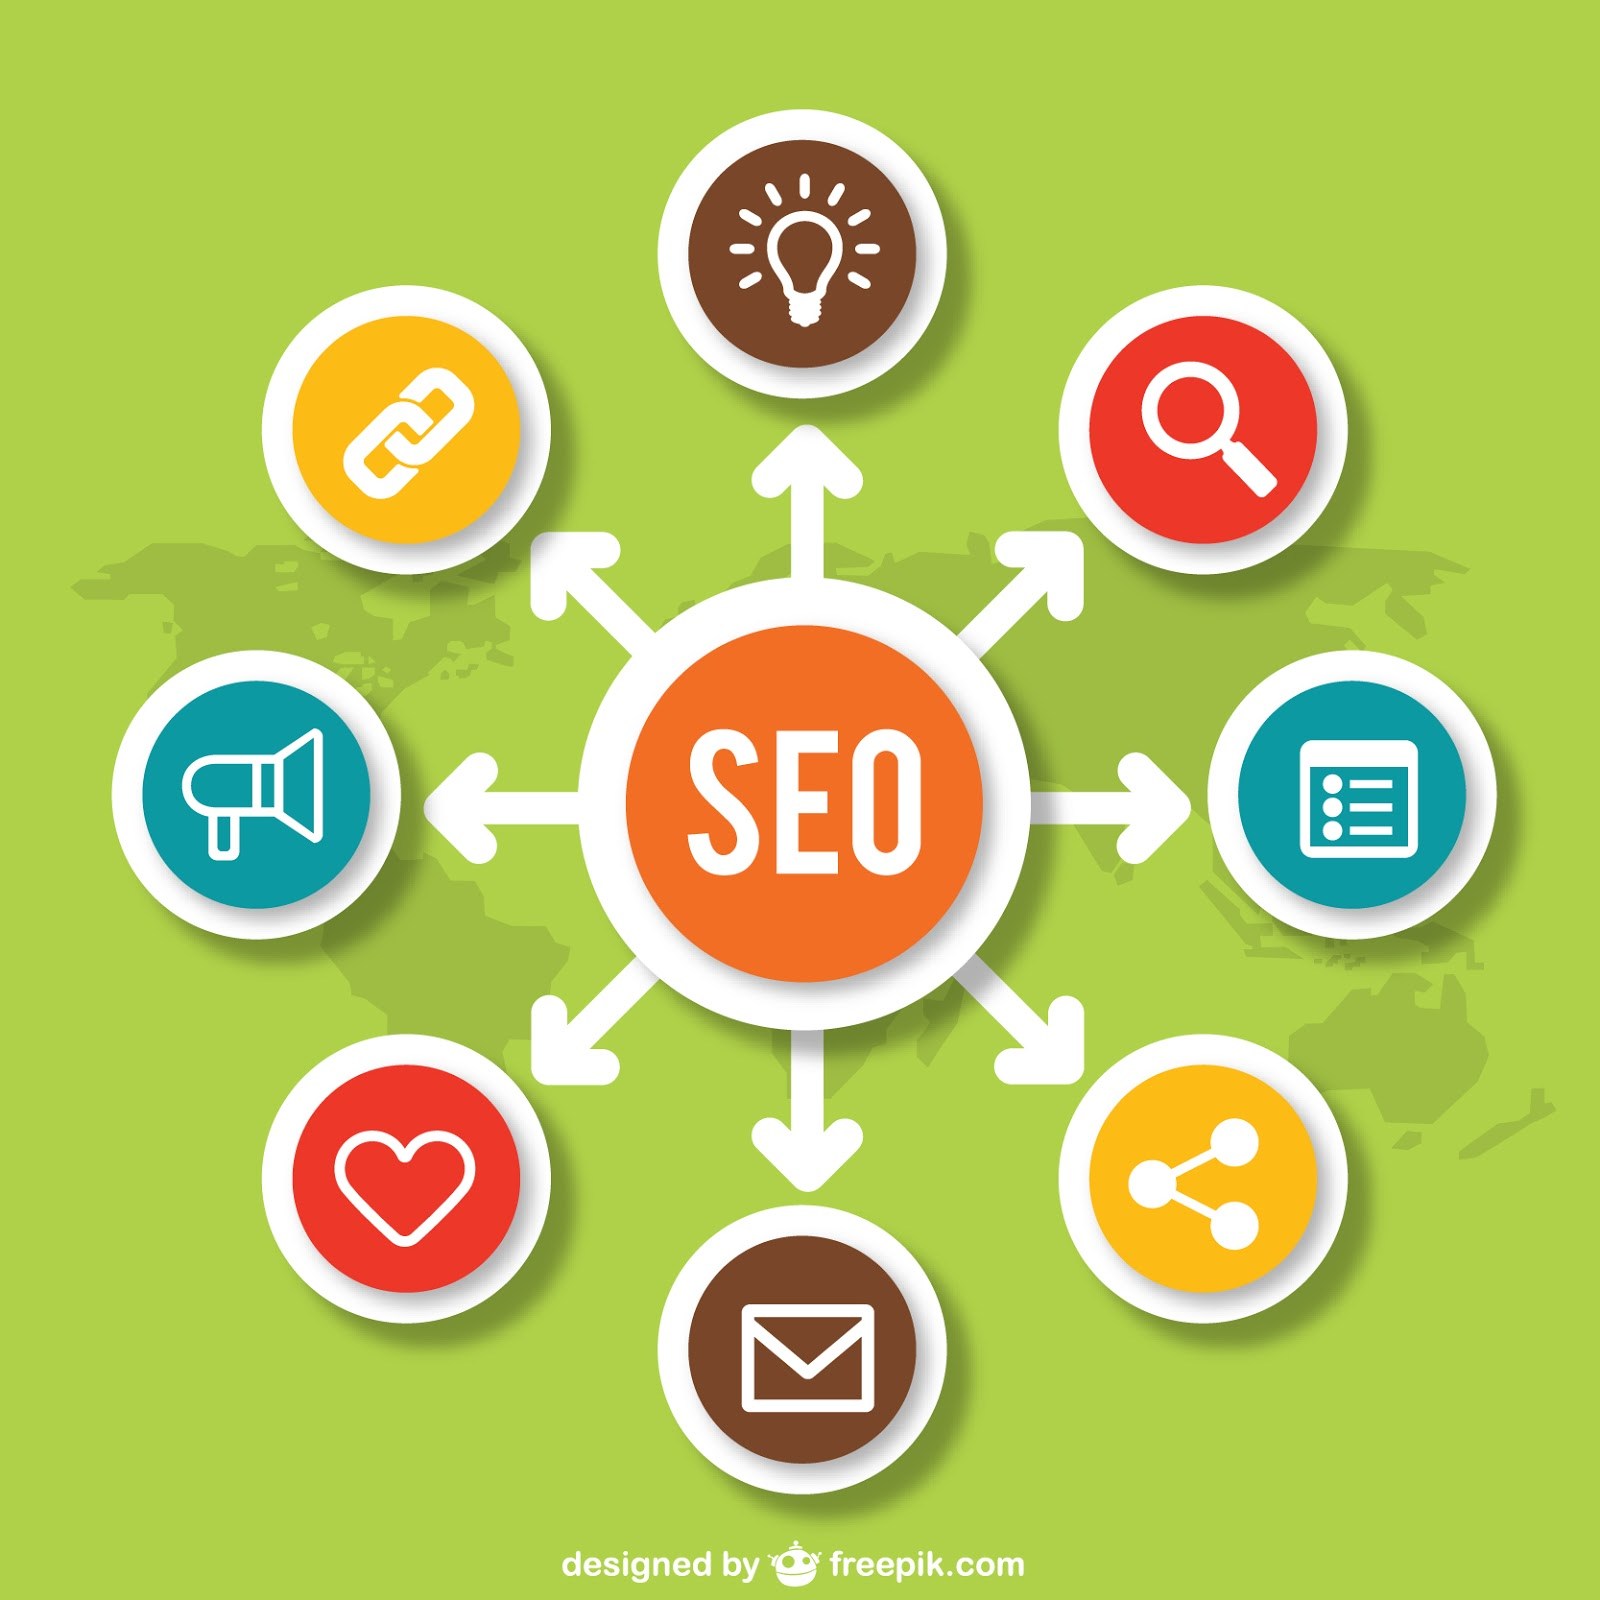 5 Technical SEO Elements Even the Not-So-Technically-Minded Can Master